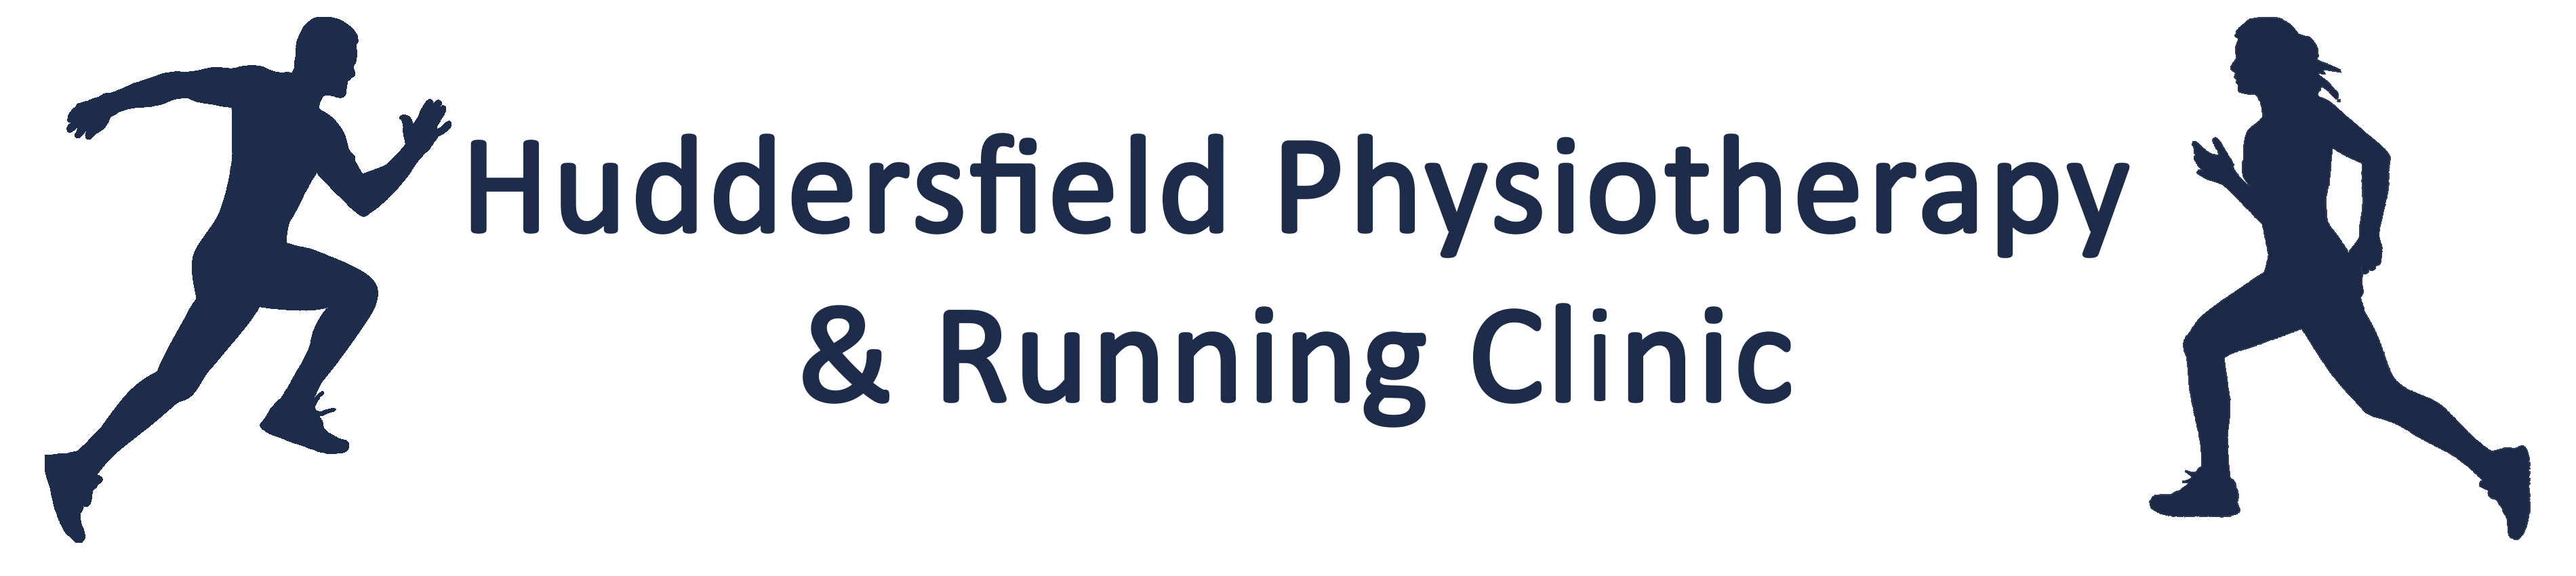 Huddersfield Physiotherapy and Running Clinic